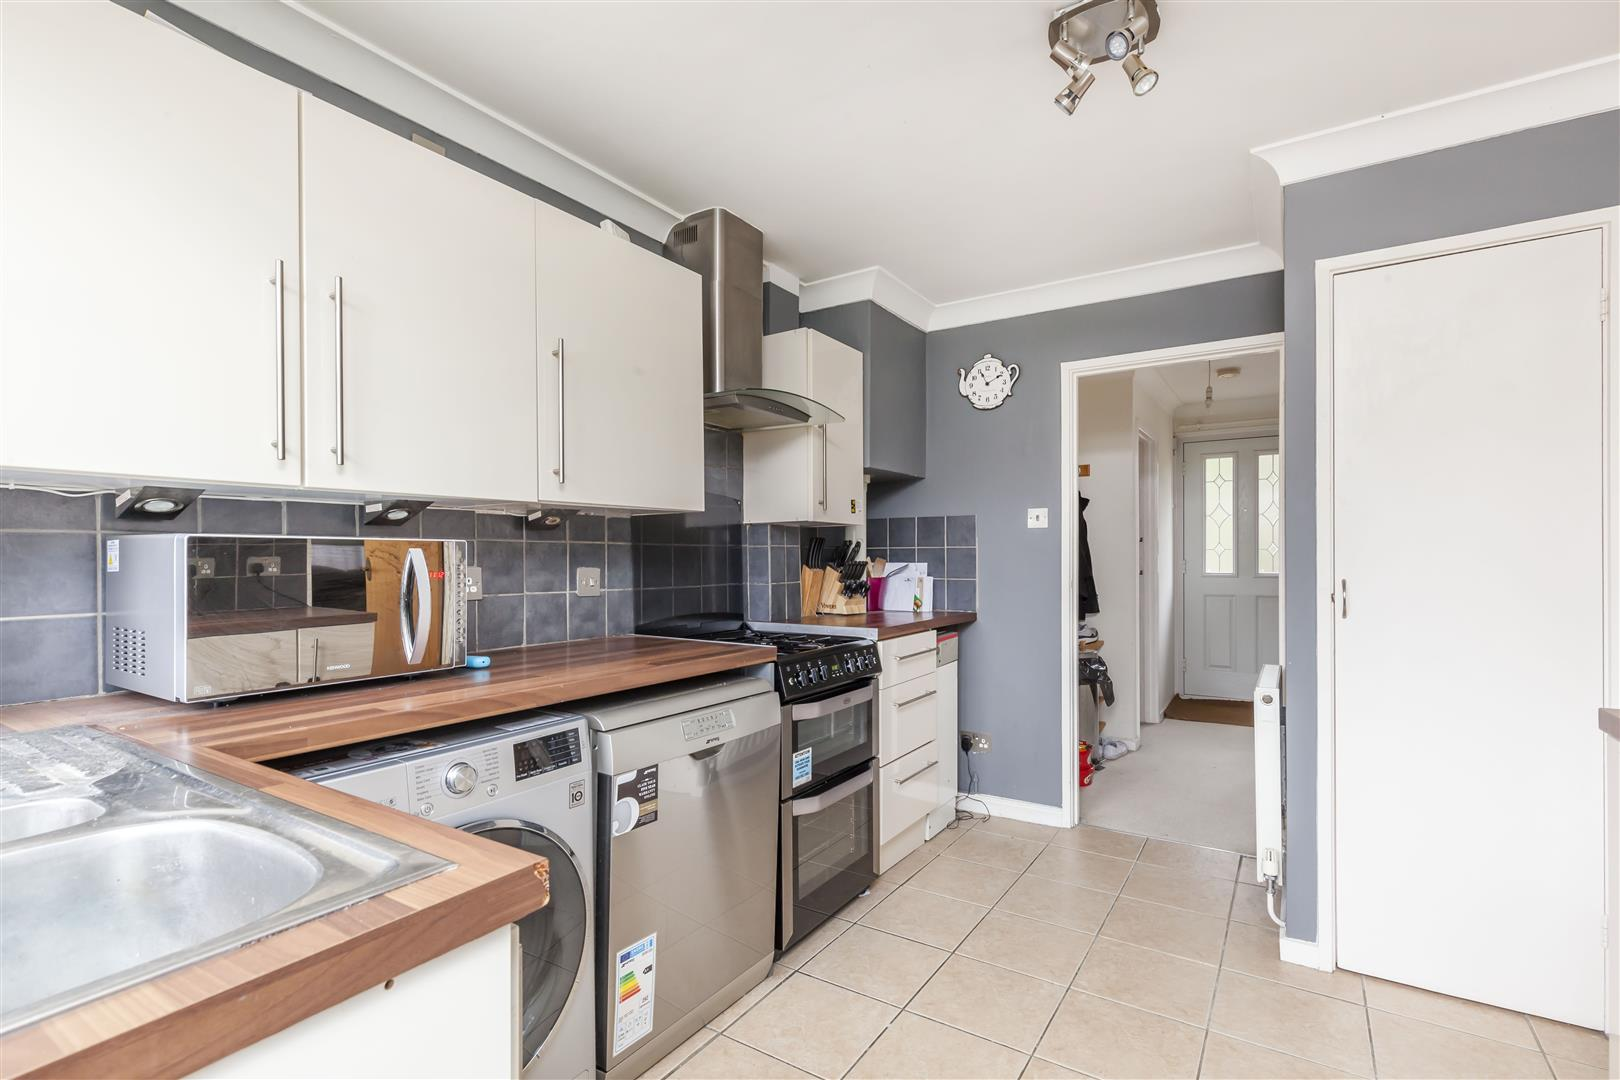 3 bed terraced-house for sale in Furnace Drive, Crawley  - Property Image 6